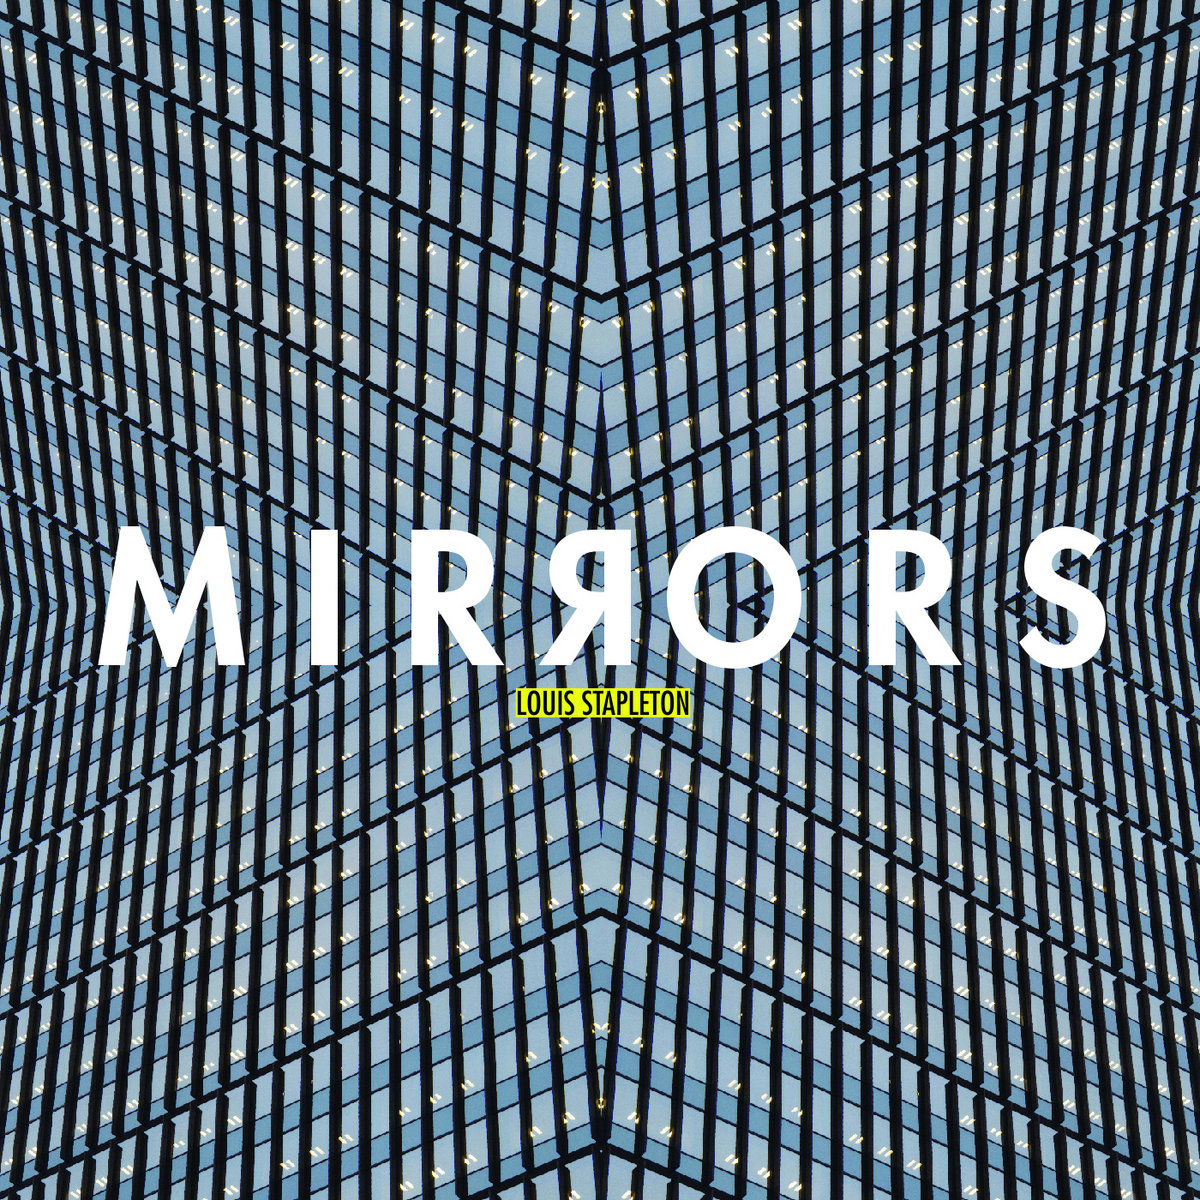 mirrors mp3 download